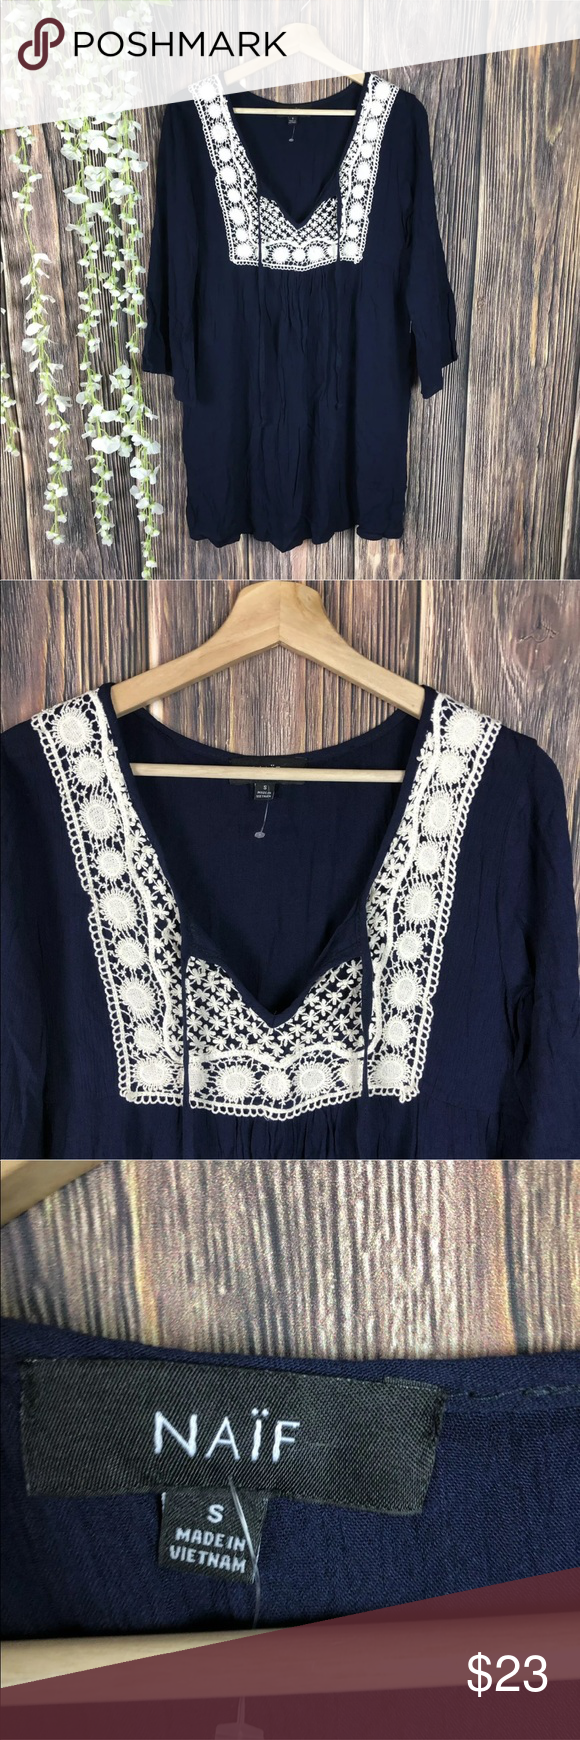 Naïf dress bell sleeve blue cream crochet bell slv Naïf  New with tags  Women's size small  Navy blue dress  Cream crochet/embroidery details fron…